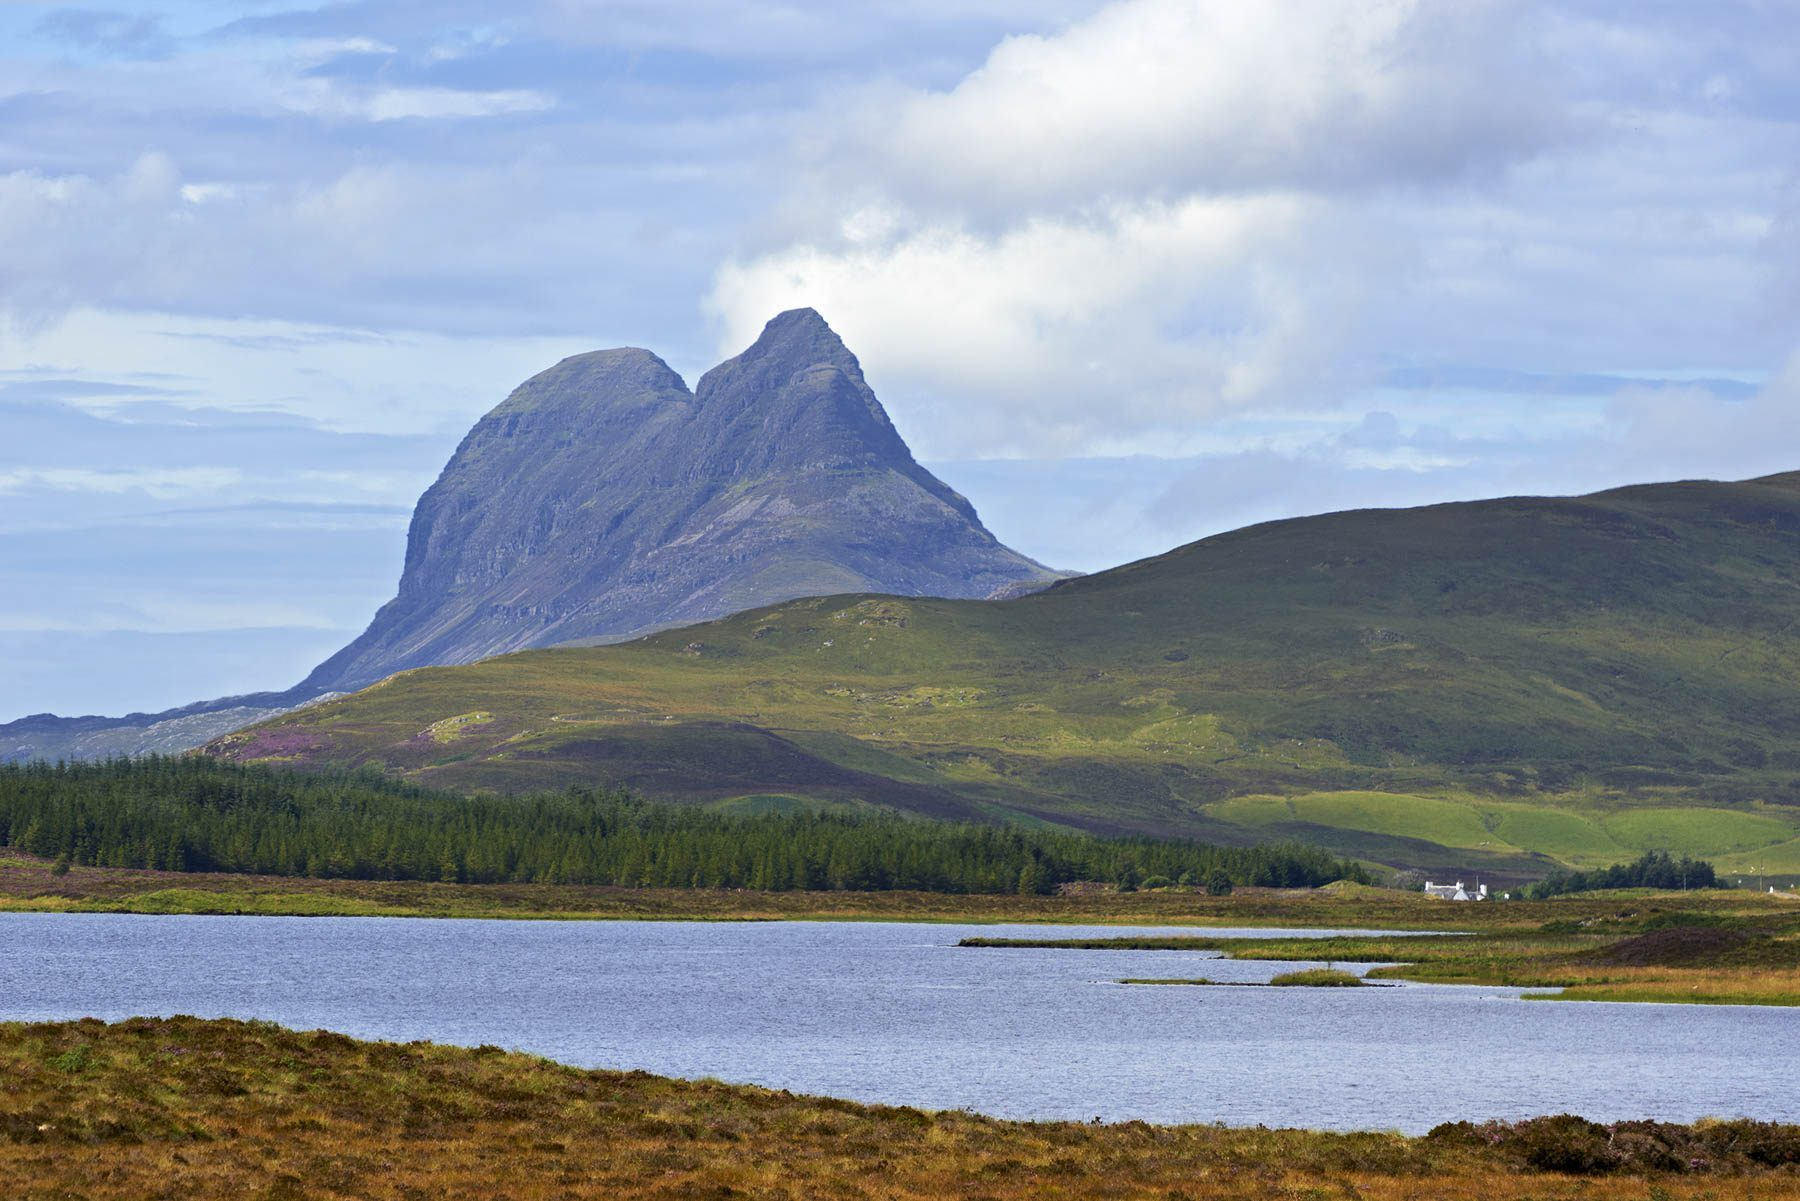 Suilven, photography by François Bertin